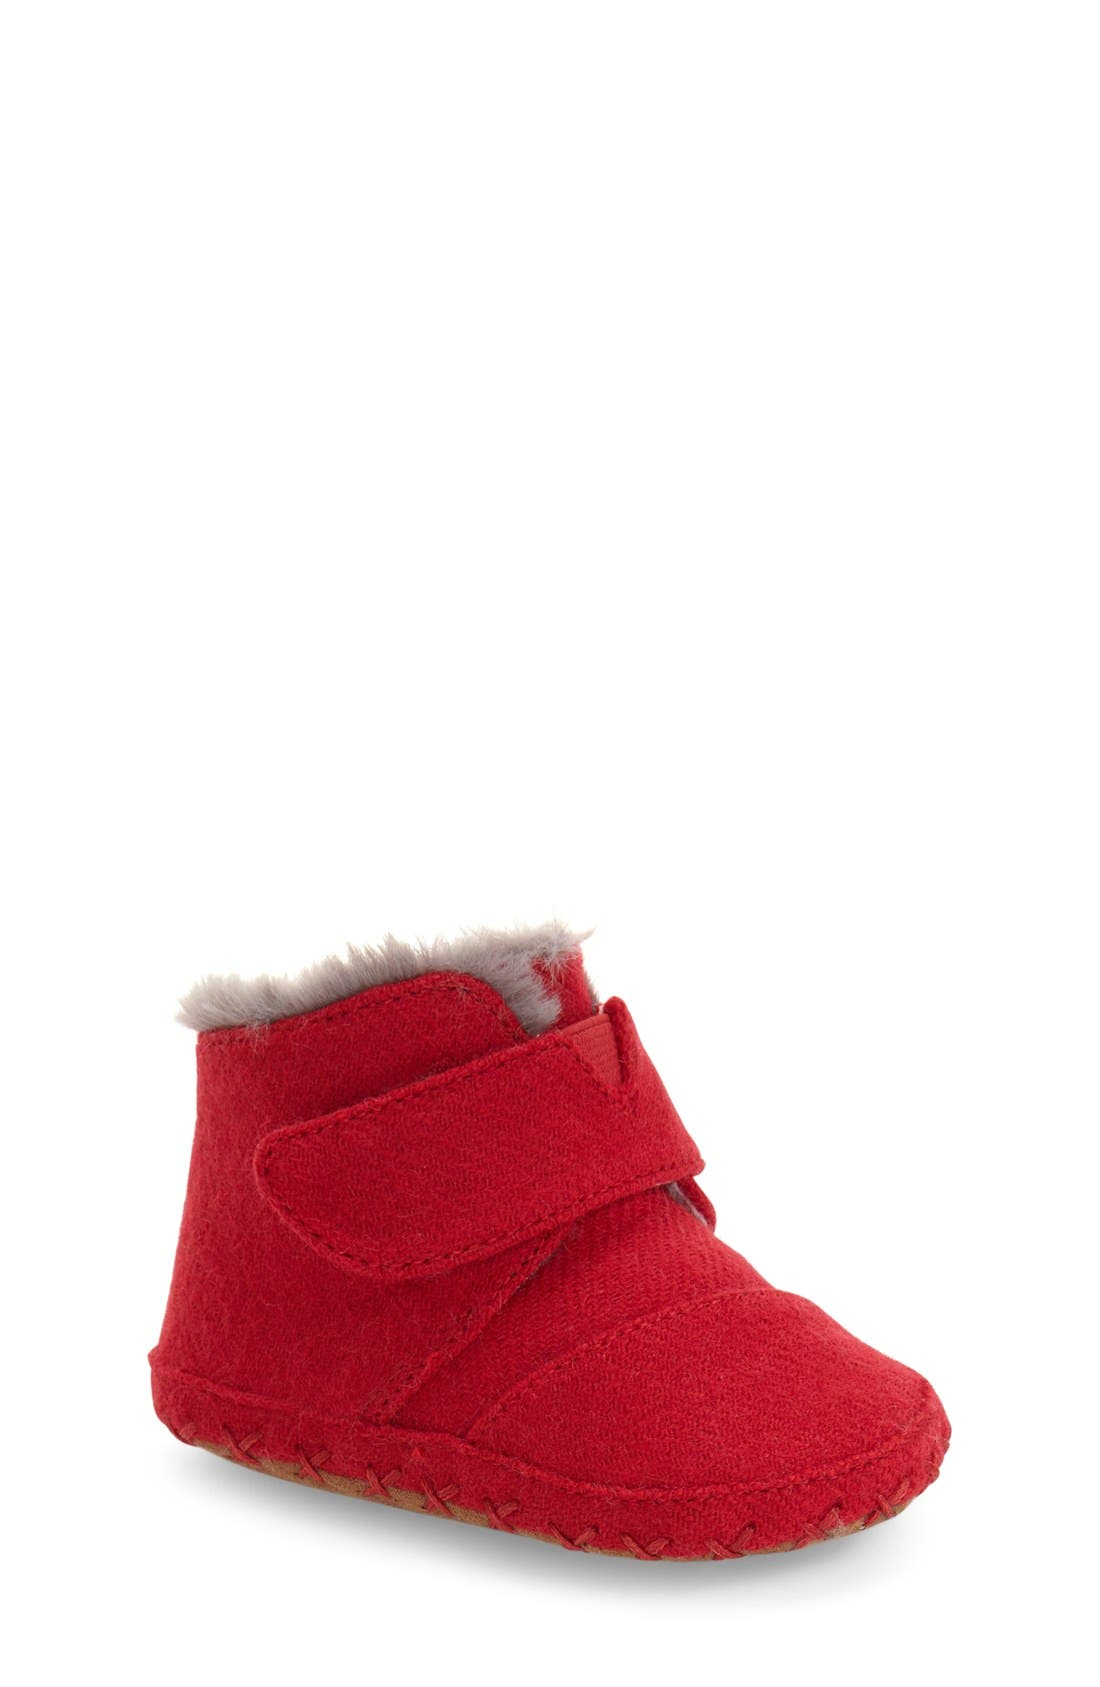 Cuna Layette Crib Shoe,                             Main thumbnail 1, color,                             RED